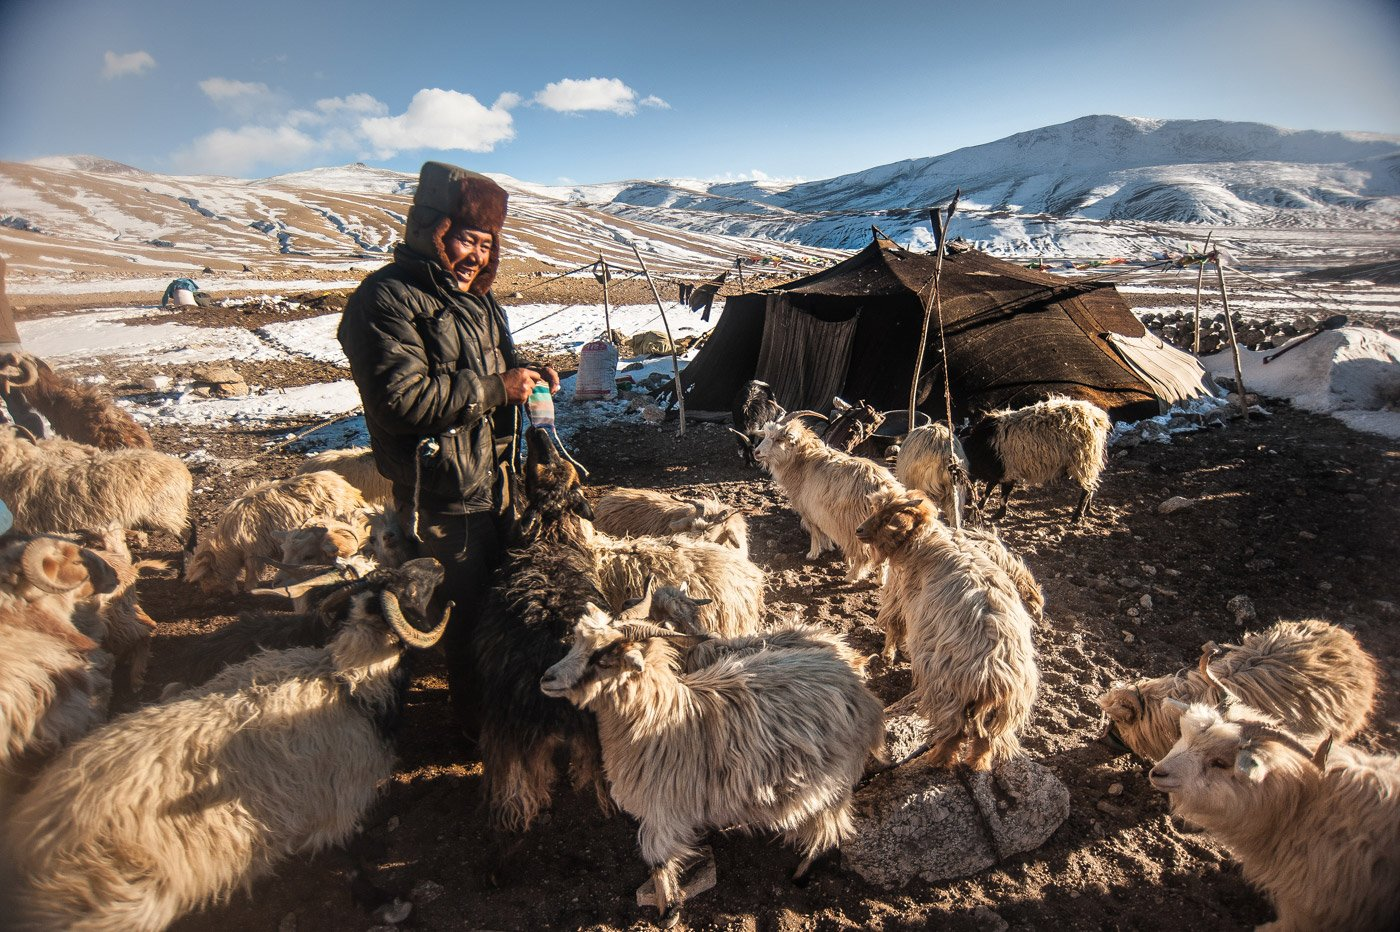 Karma Rinchen (a Changpa) is herding the pashmina goat. 'Changpa' is a tribe found in the high altitudes of Ladakh